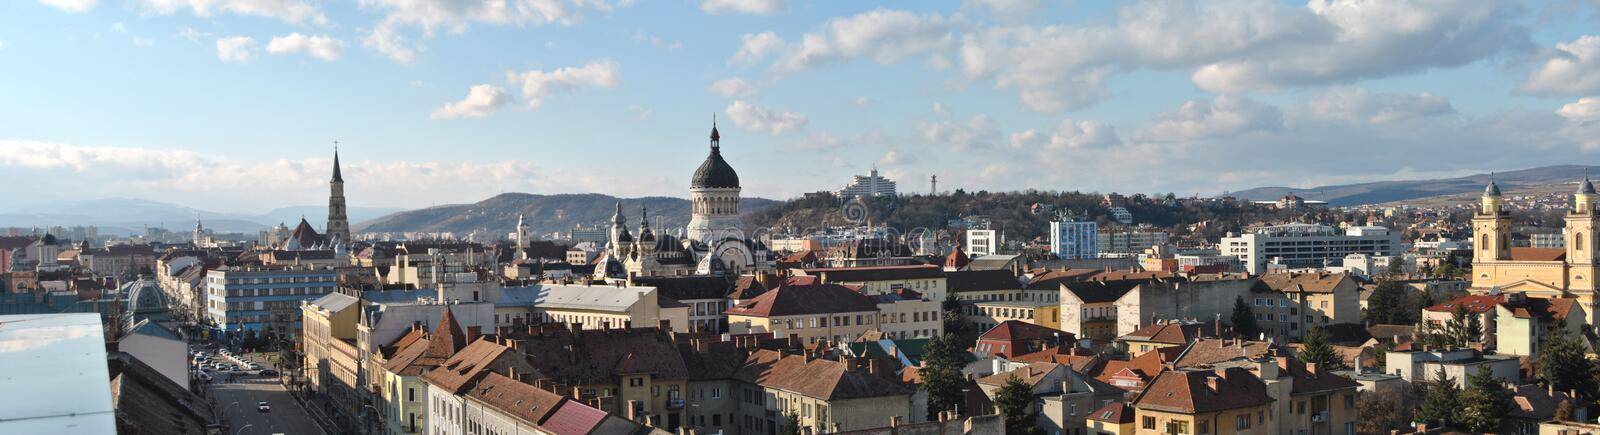 Download Panorama of Cluj 1 stock image. Image of belvedere, ortodox - 17952723